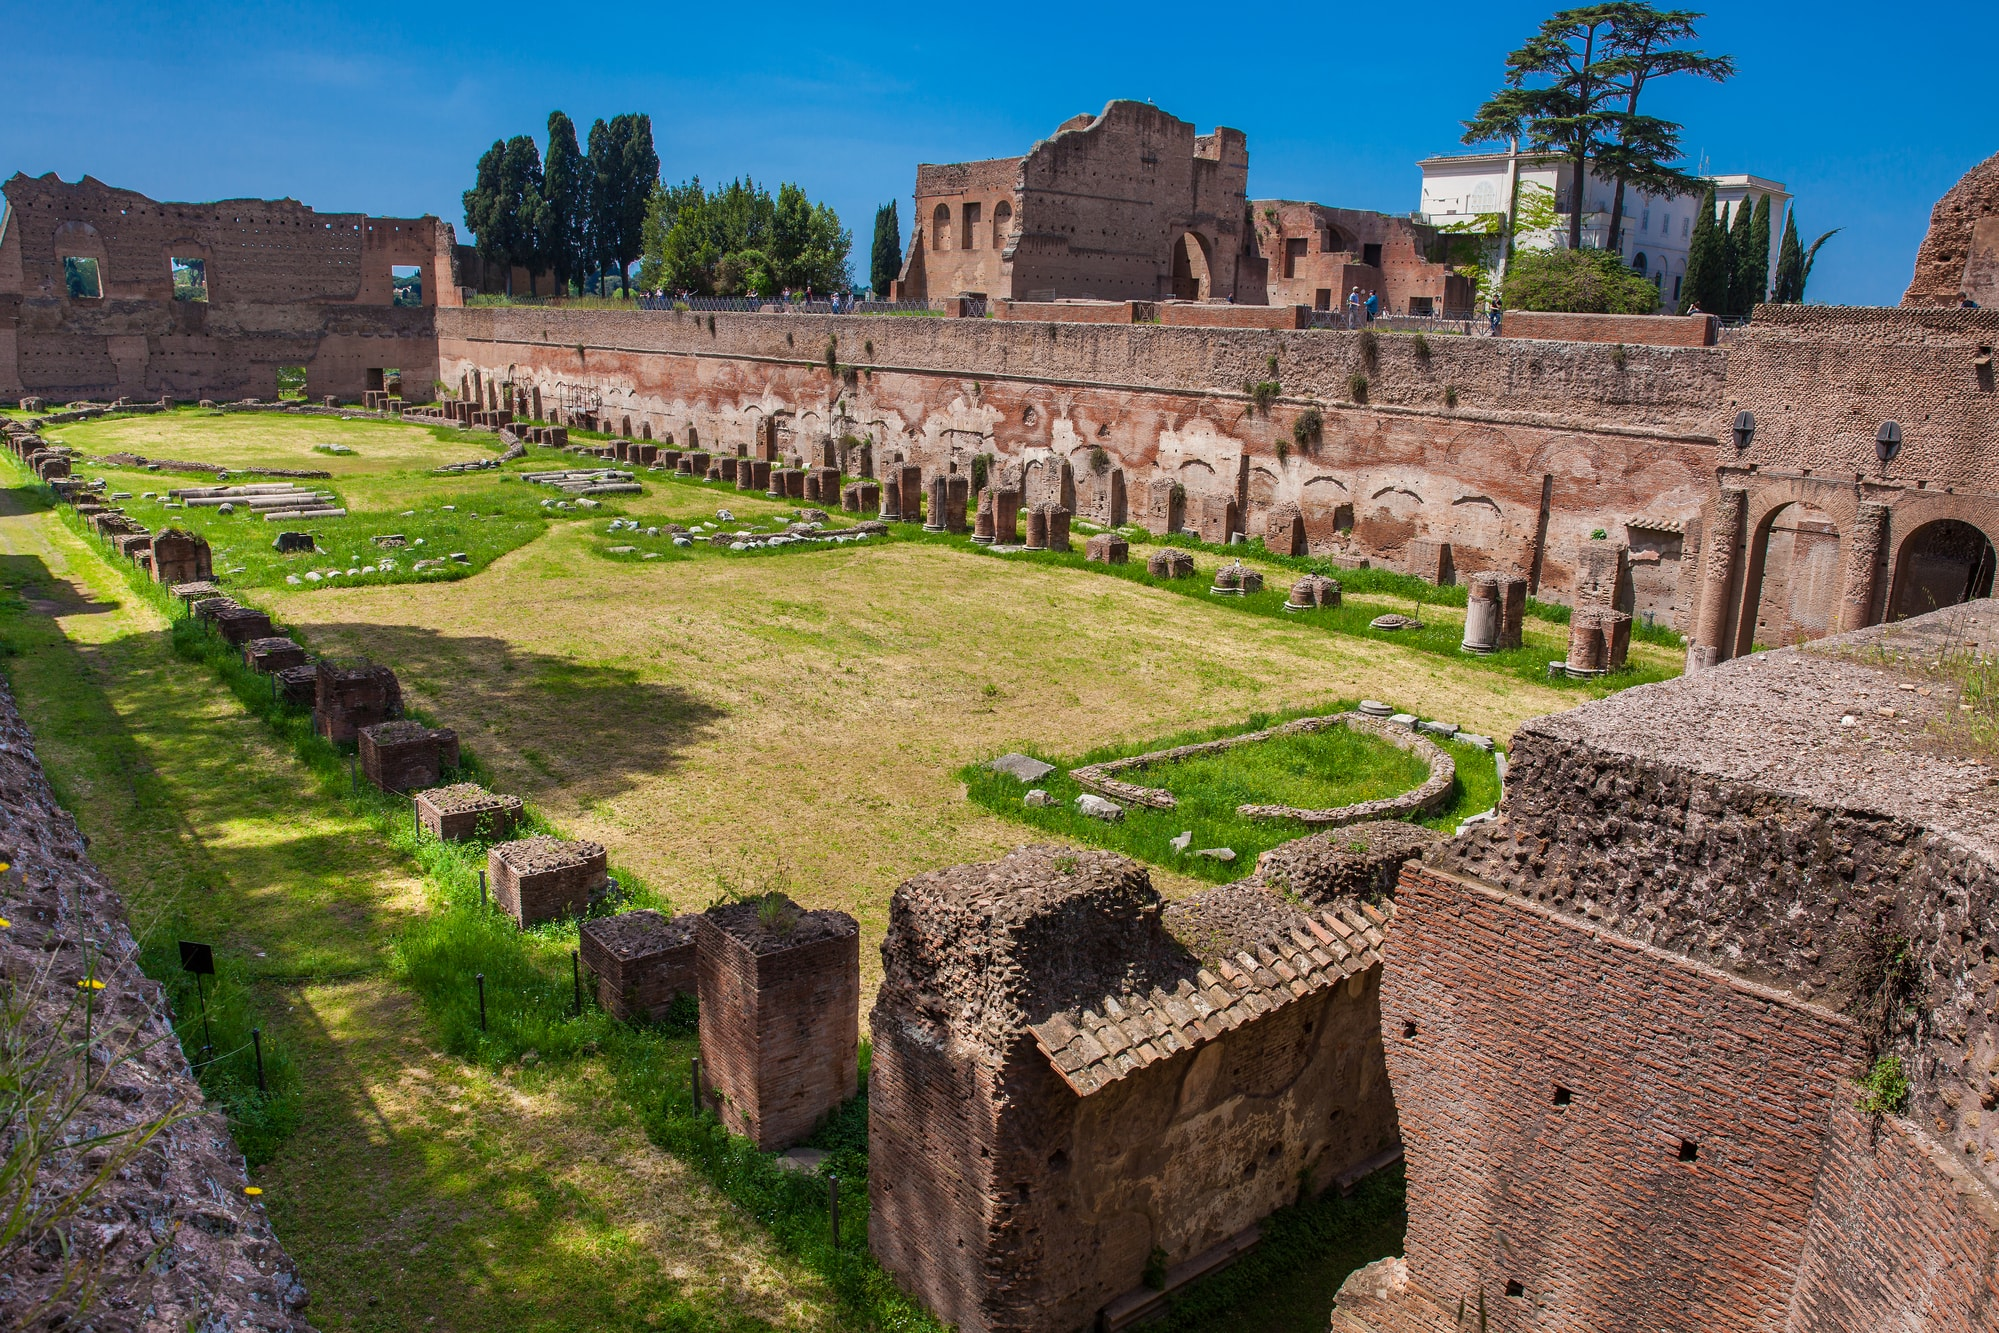 The Stadium of Domitian on the Palatine Hill in Rome